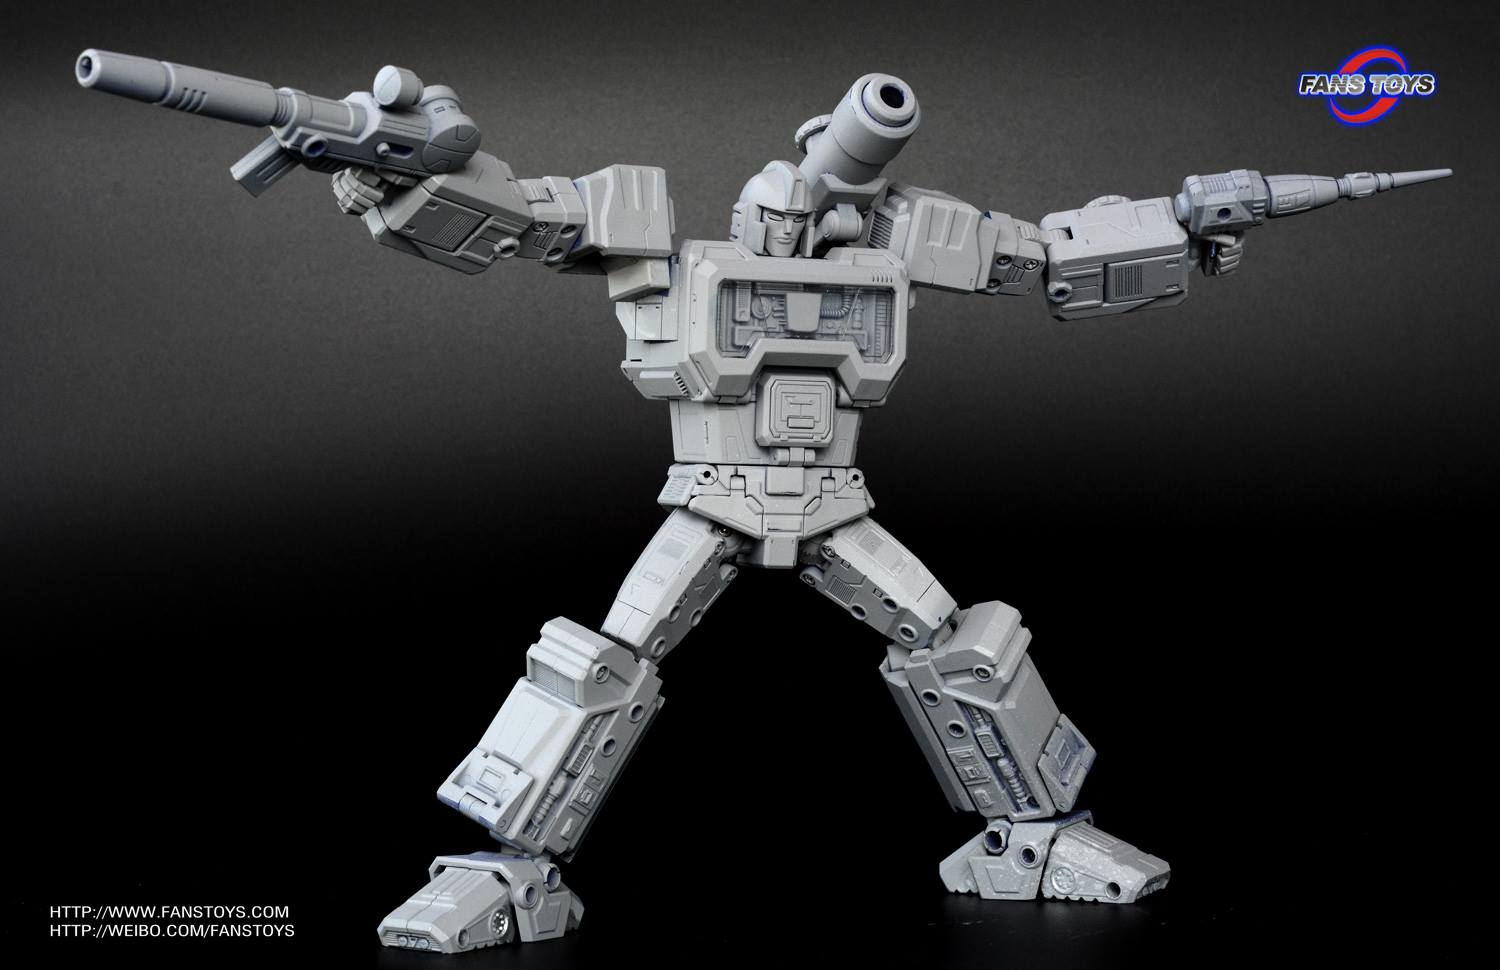 Fans Toys Reveals Tesla and Spotter (MP Scale Perceptor and Reflector)